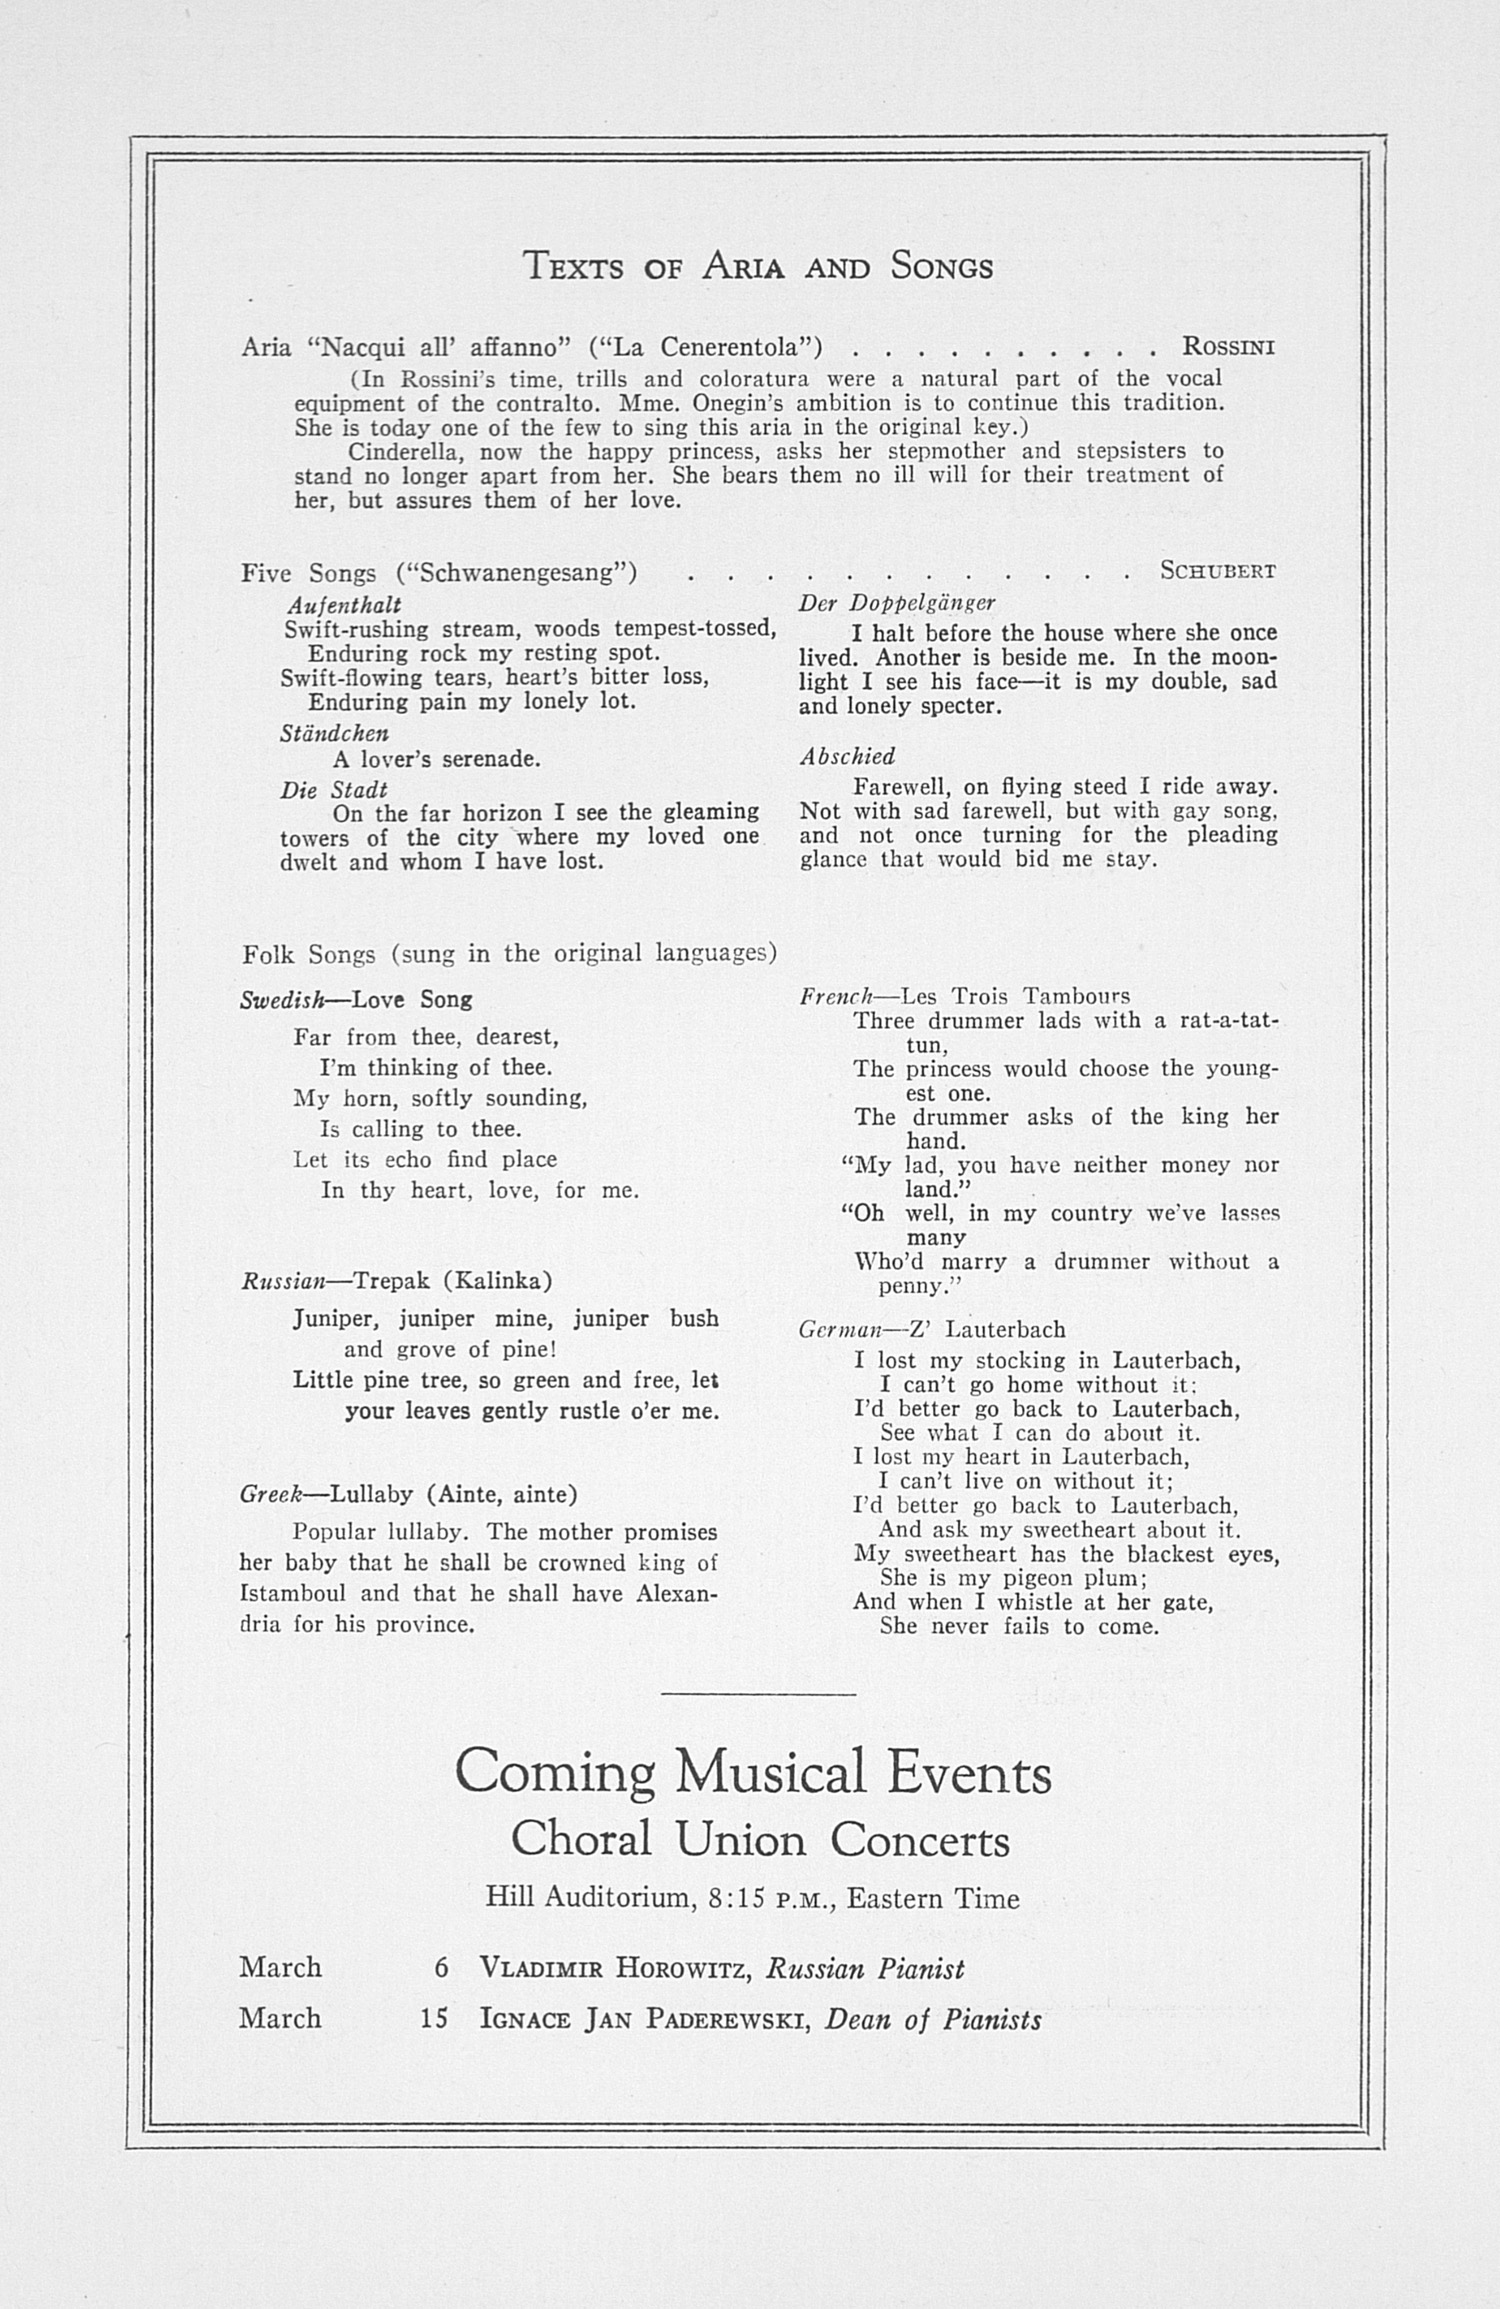 UMS Concert Program, February 16, 1933: Fifty-fourth Annual Choral Union Concert Series -- Sigrid Onegin image